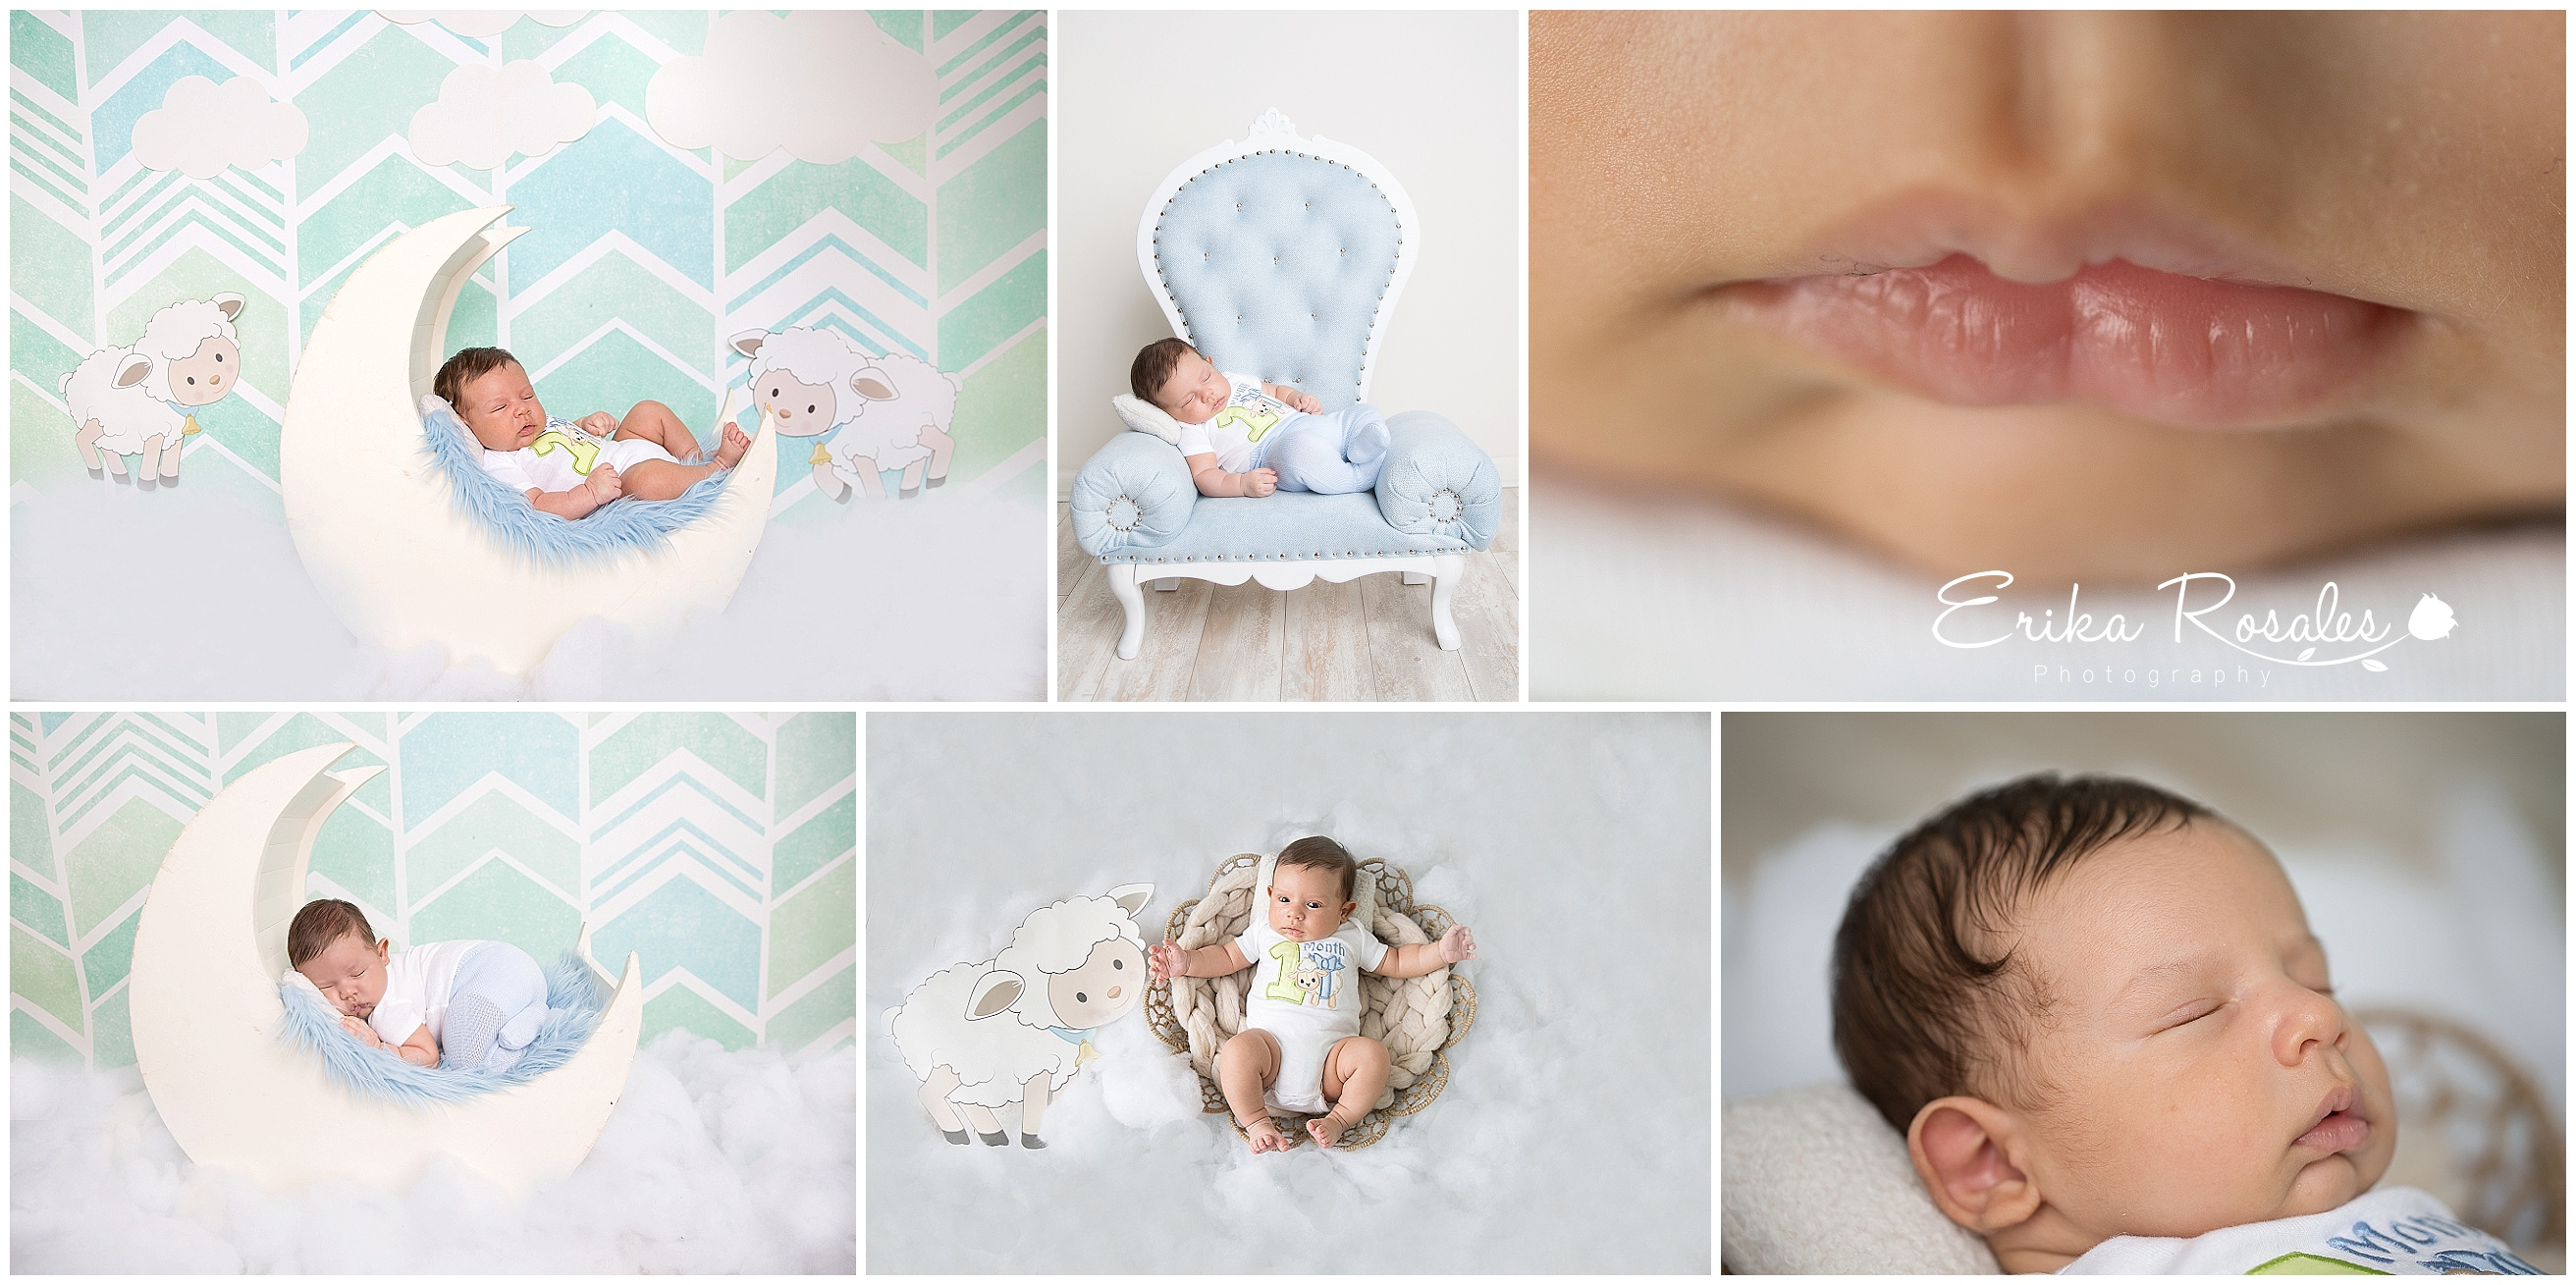 This entry was posted in newborn photo session and tagged arthur ave photo studio baby boy newborn baby boy one month old baby girl baby newborn photo